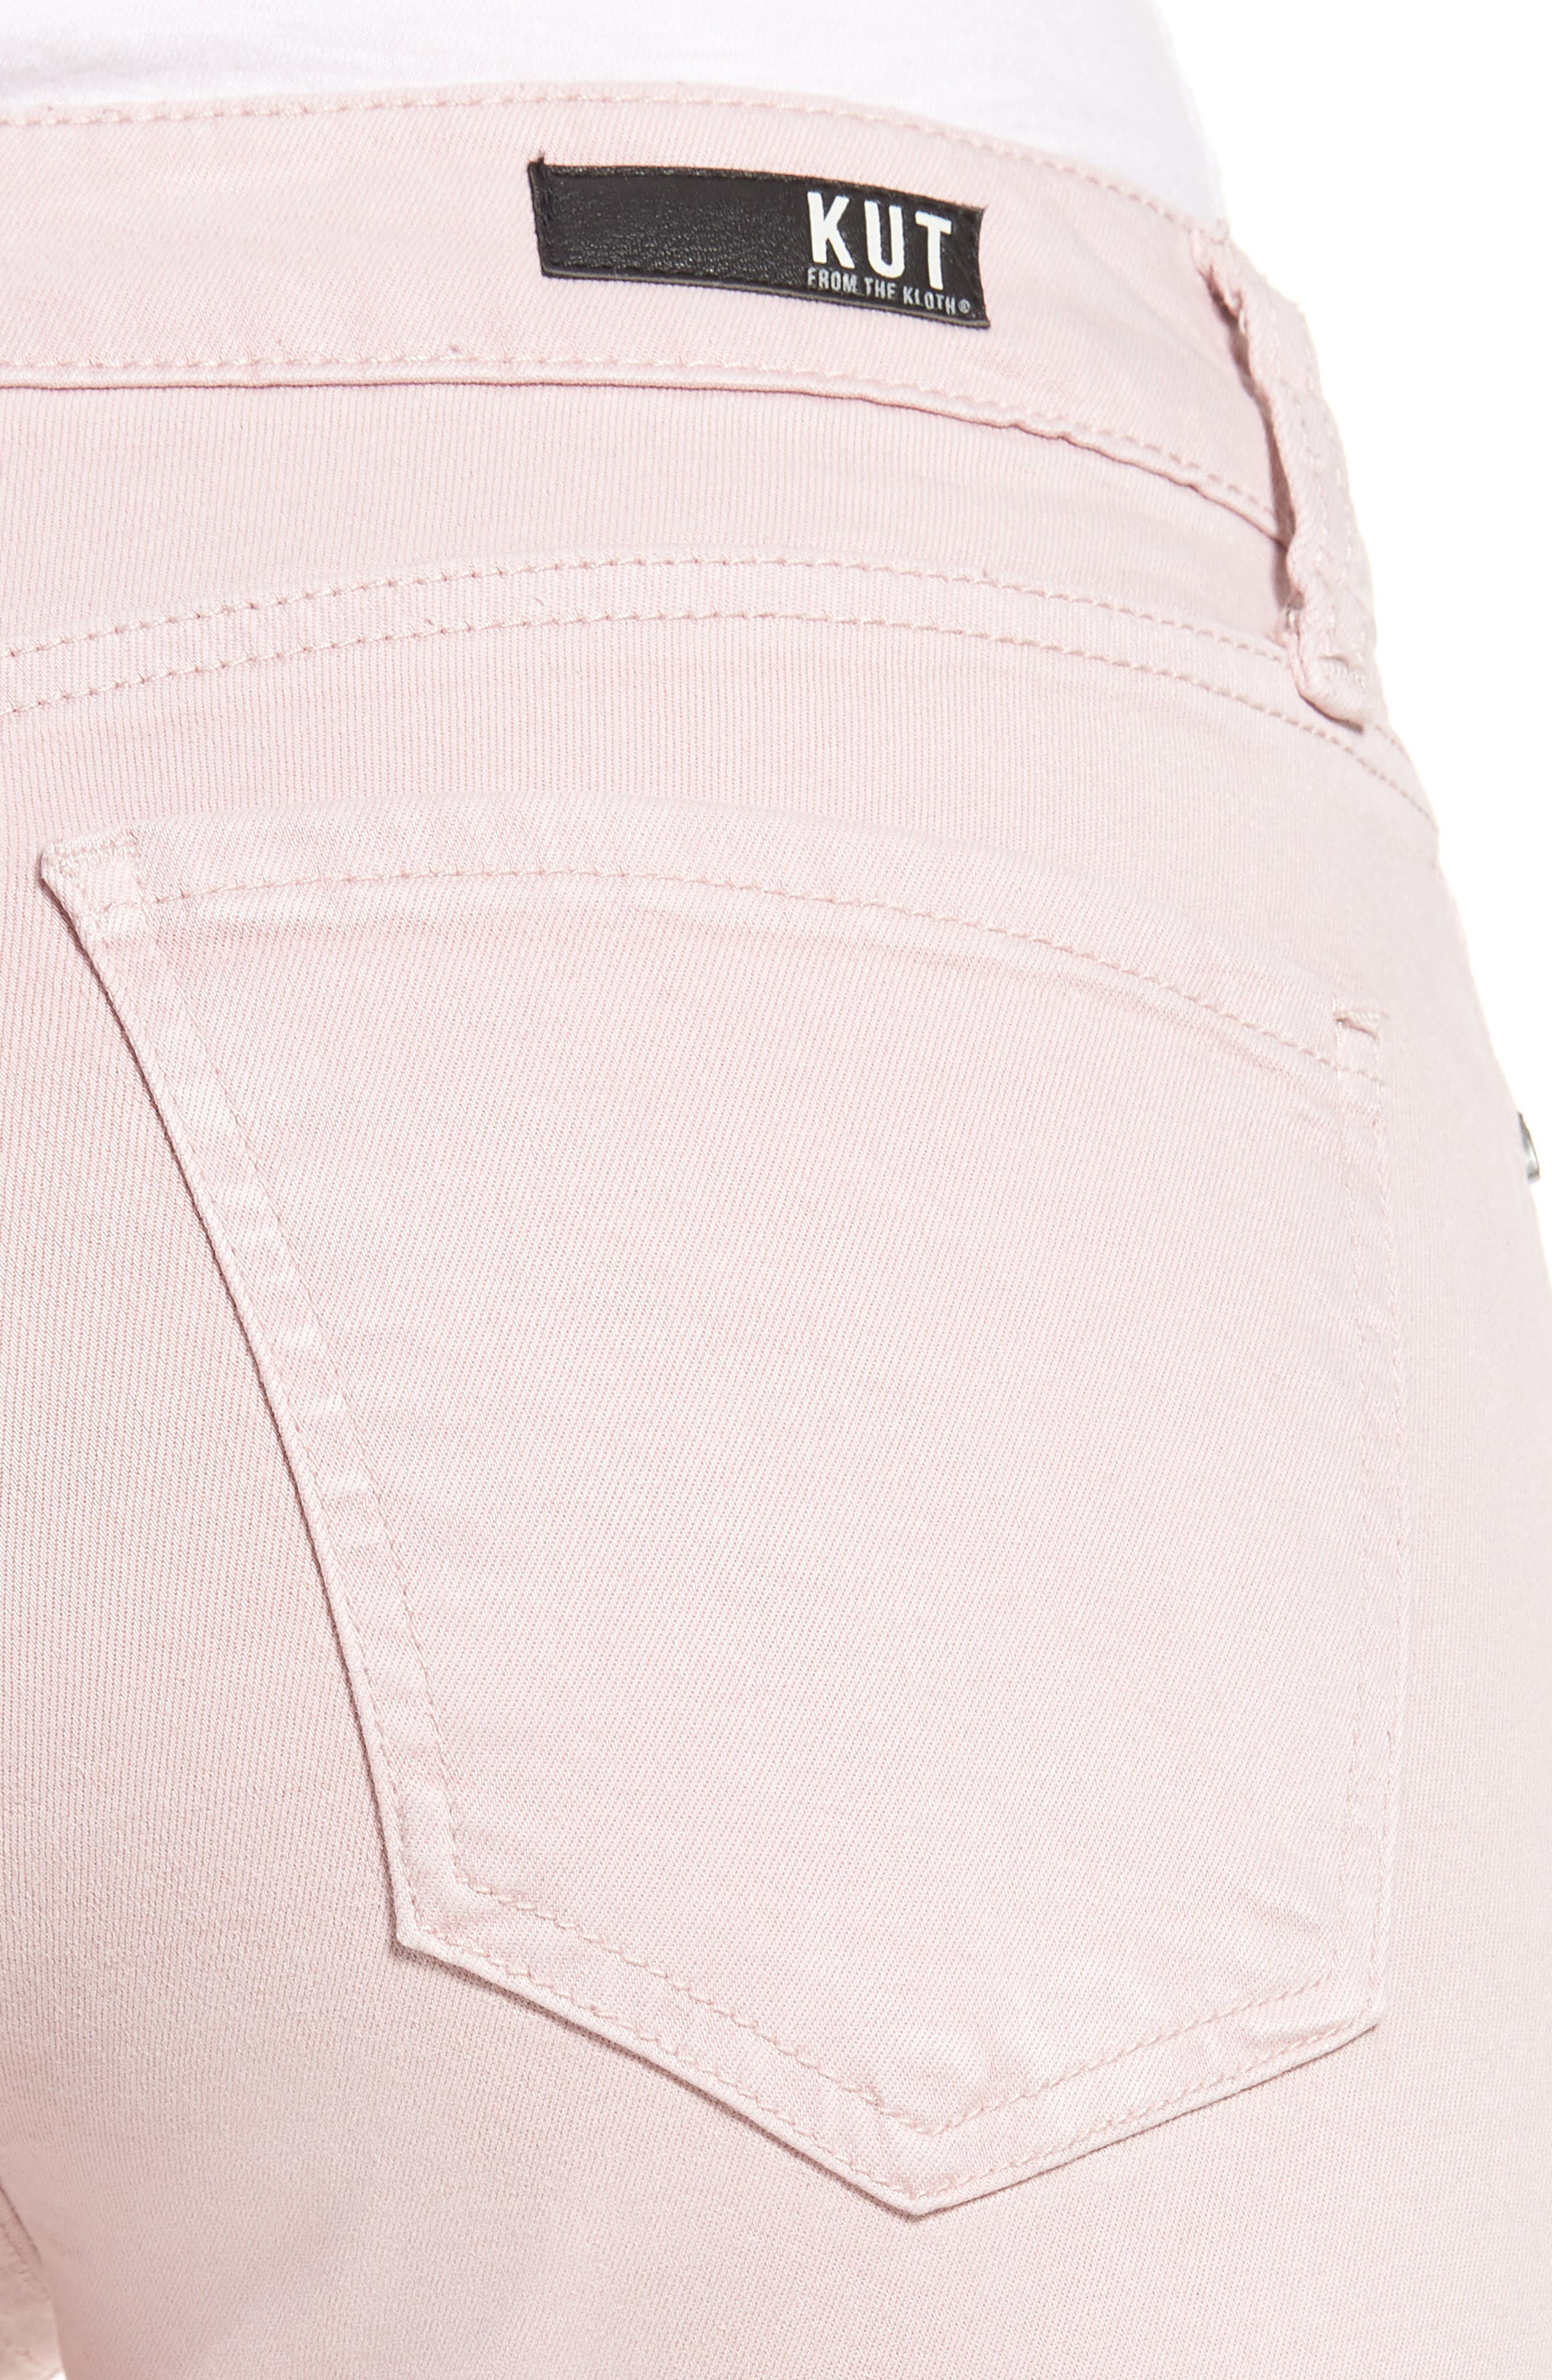 KUT from the Kloth Amy Crop Skinny Jeans,                             Alternate thumbnail 4, color,